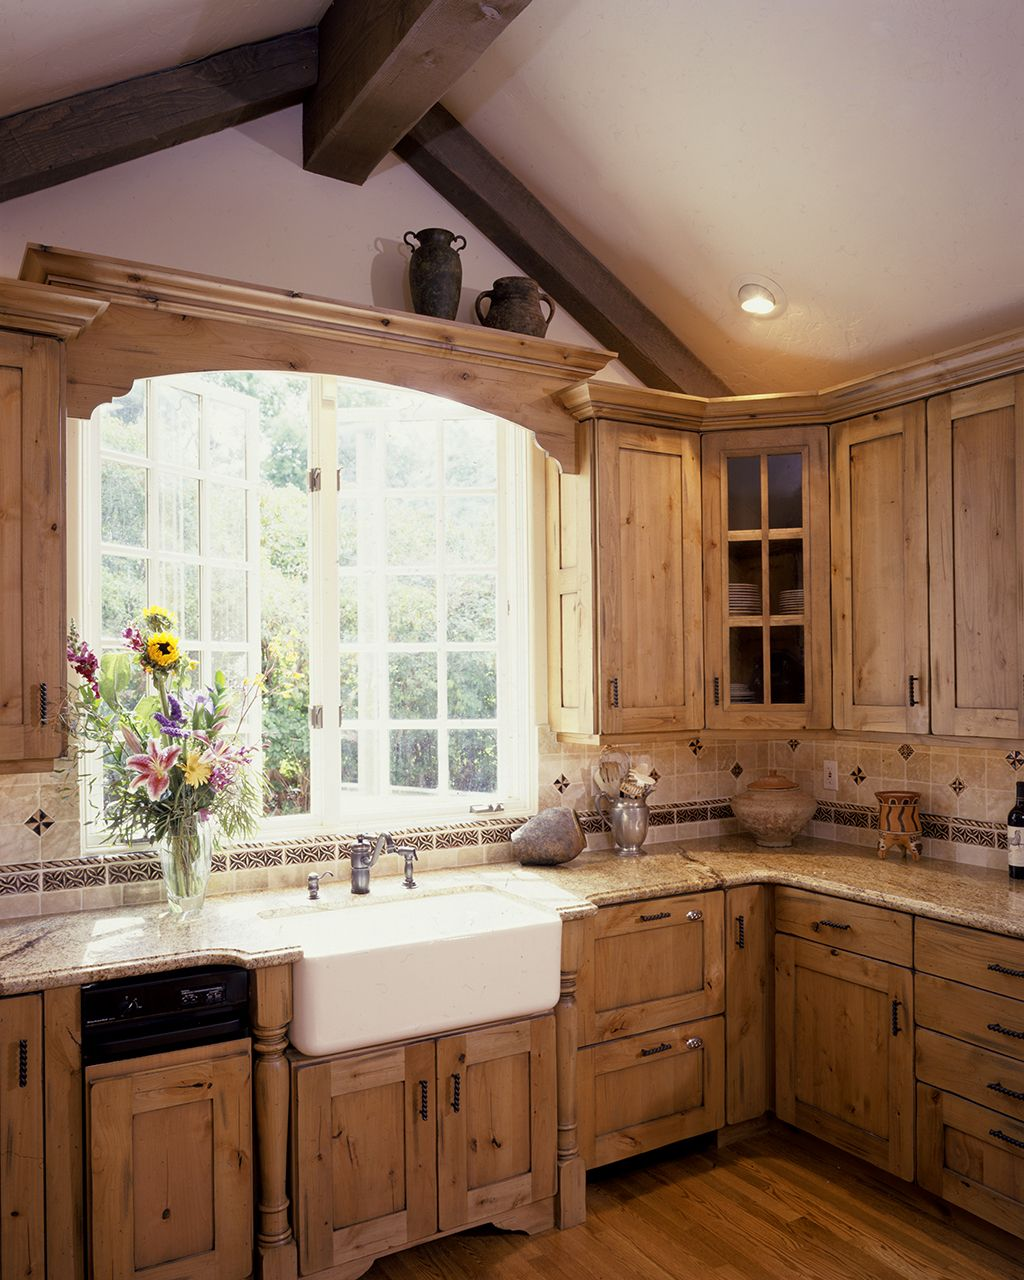 country kitchen ideas Bright Country Kitchen in the Suburbs